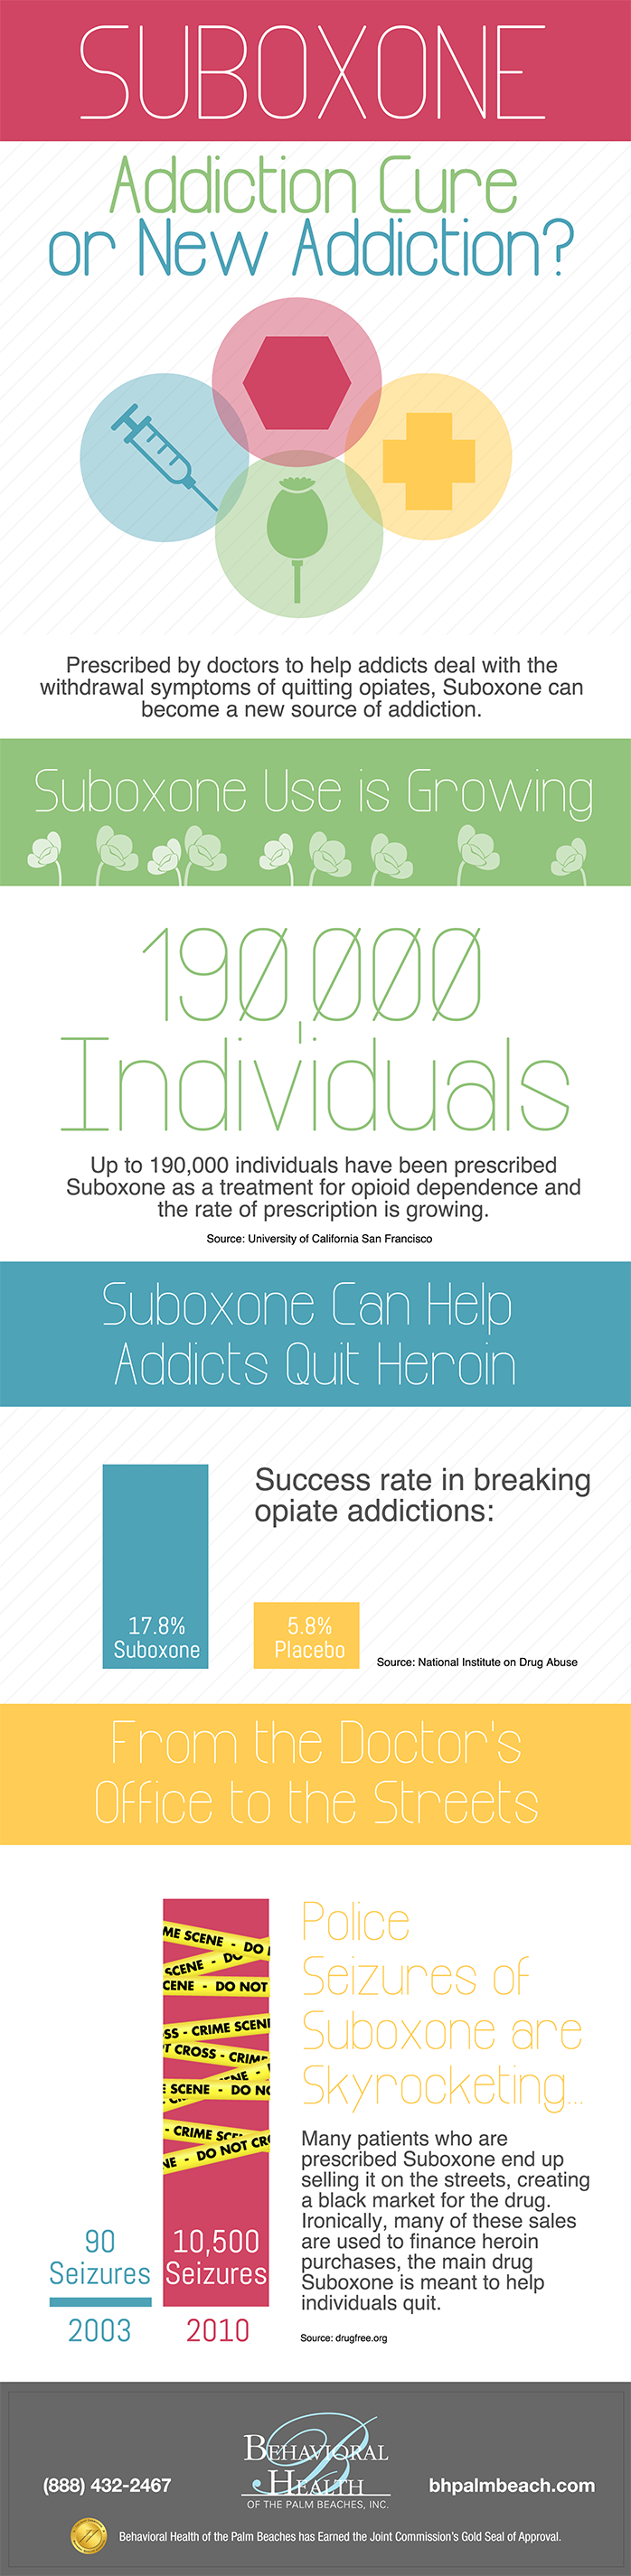 List Of Synonyms And Antonyms Of The Word Suboxone Withdrawal